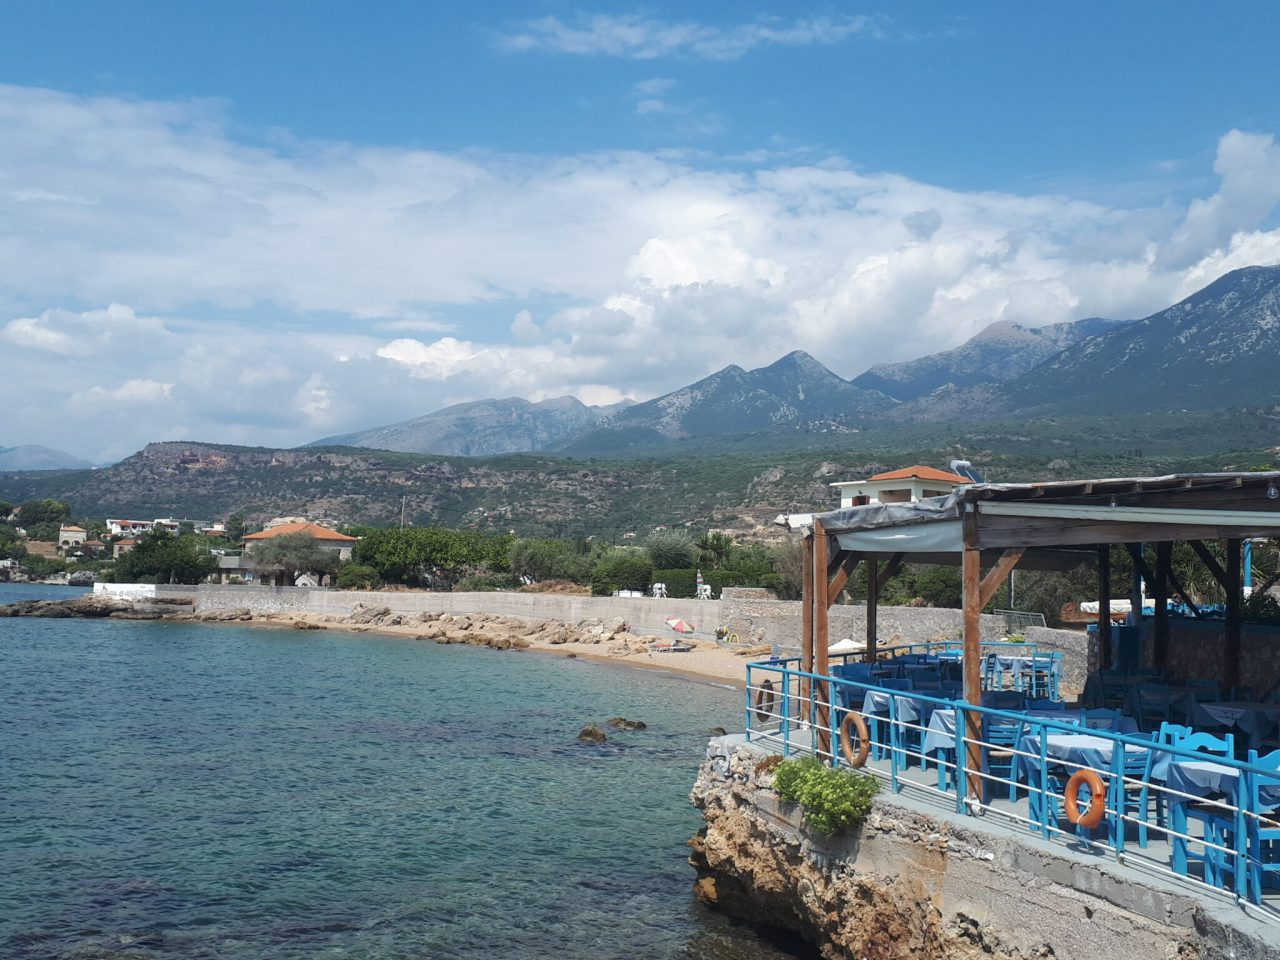 Clouds over mountains behind Stoupa